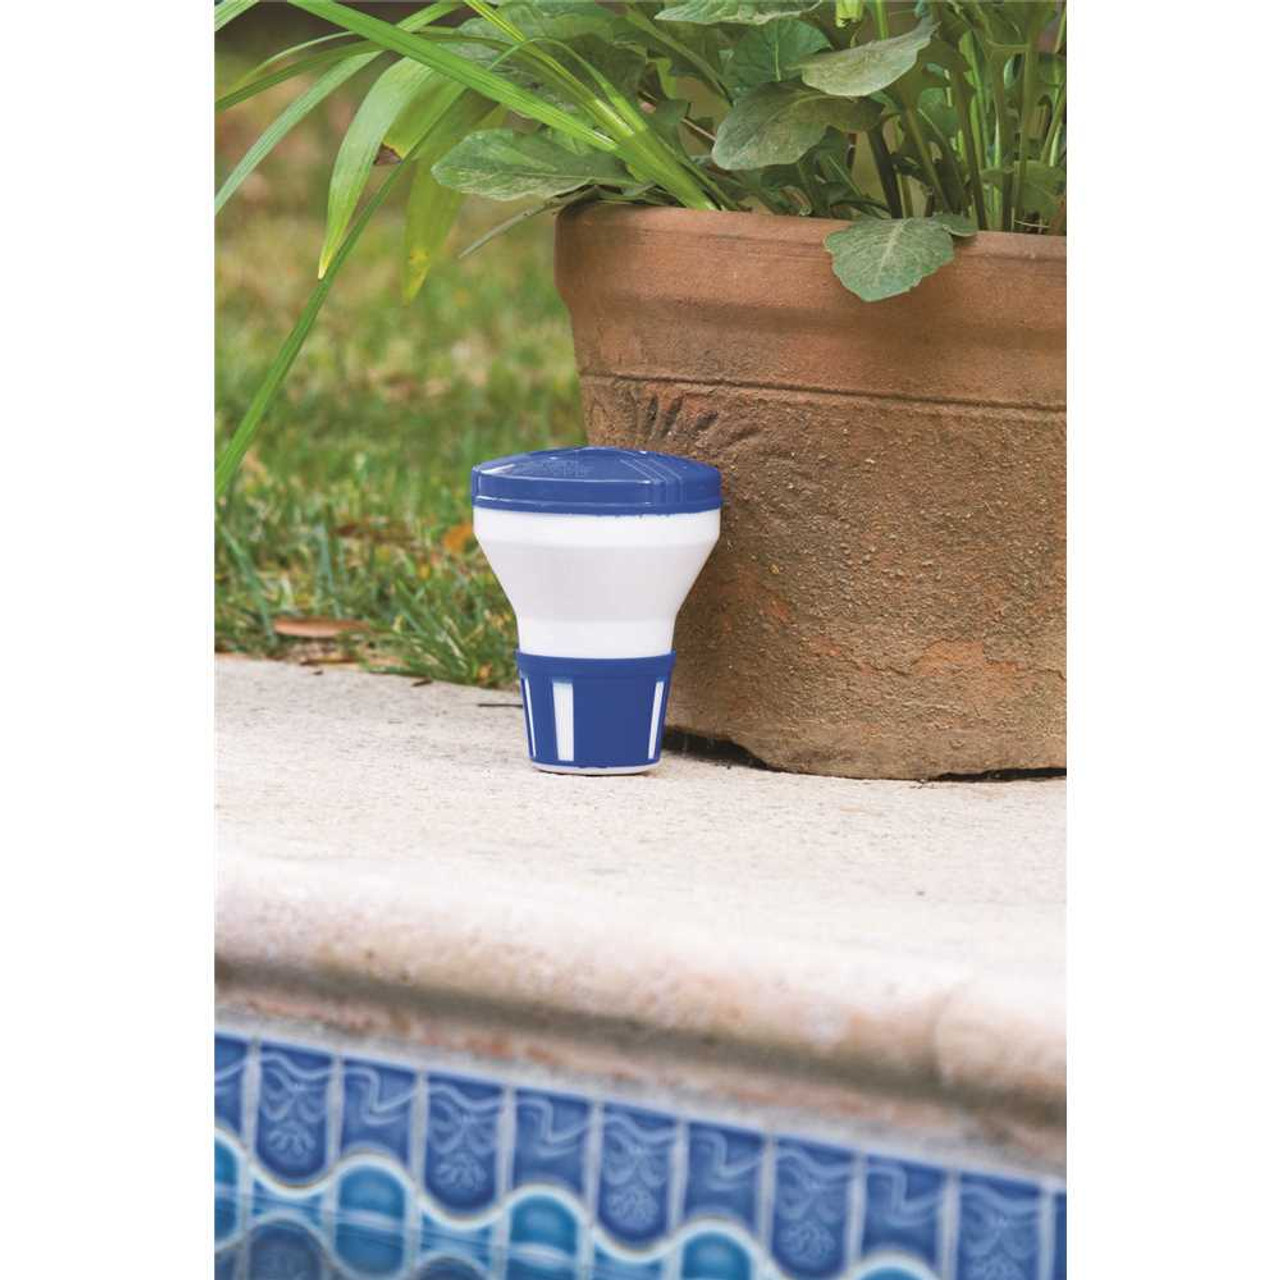 HDX Floating Chlorine / Bromine Dispenser for Spas, Hot Tubs and Small Pools Item # 203796268|HDX Part # 62157|UPC Code 085334621572|UNSPSC Code 49241712